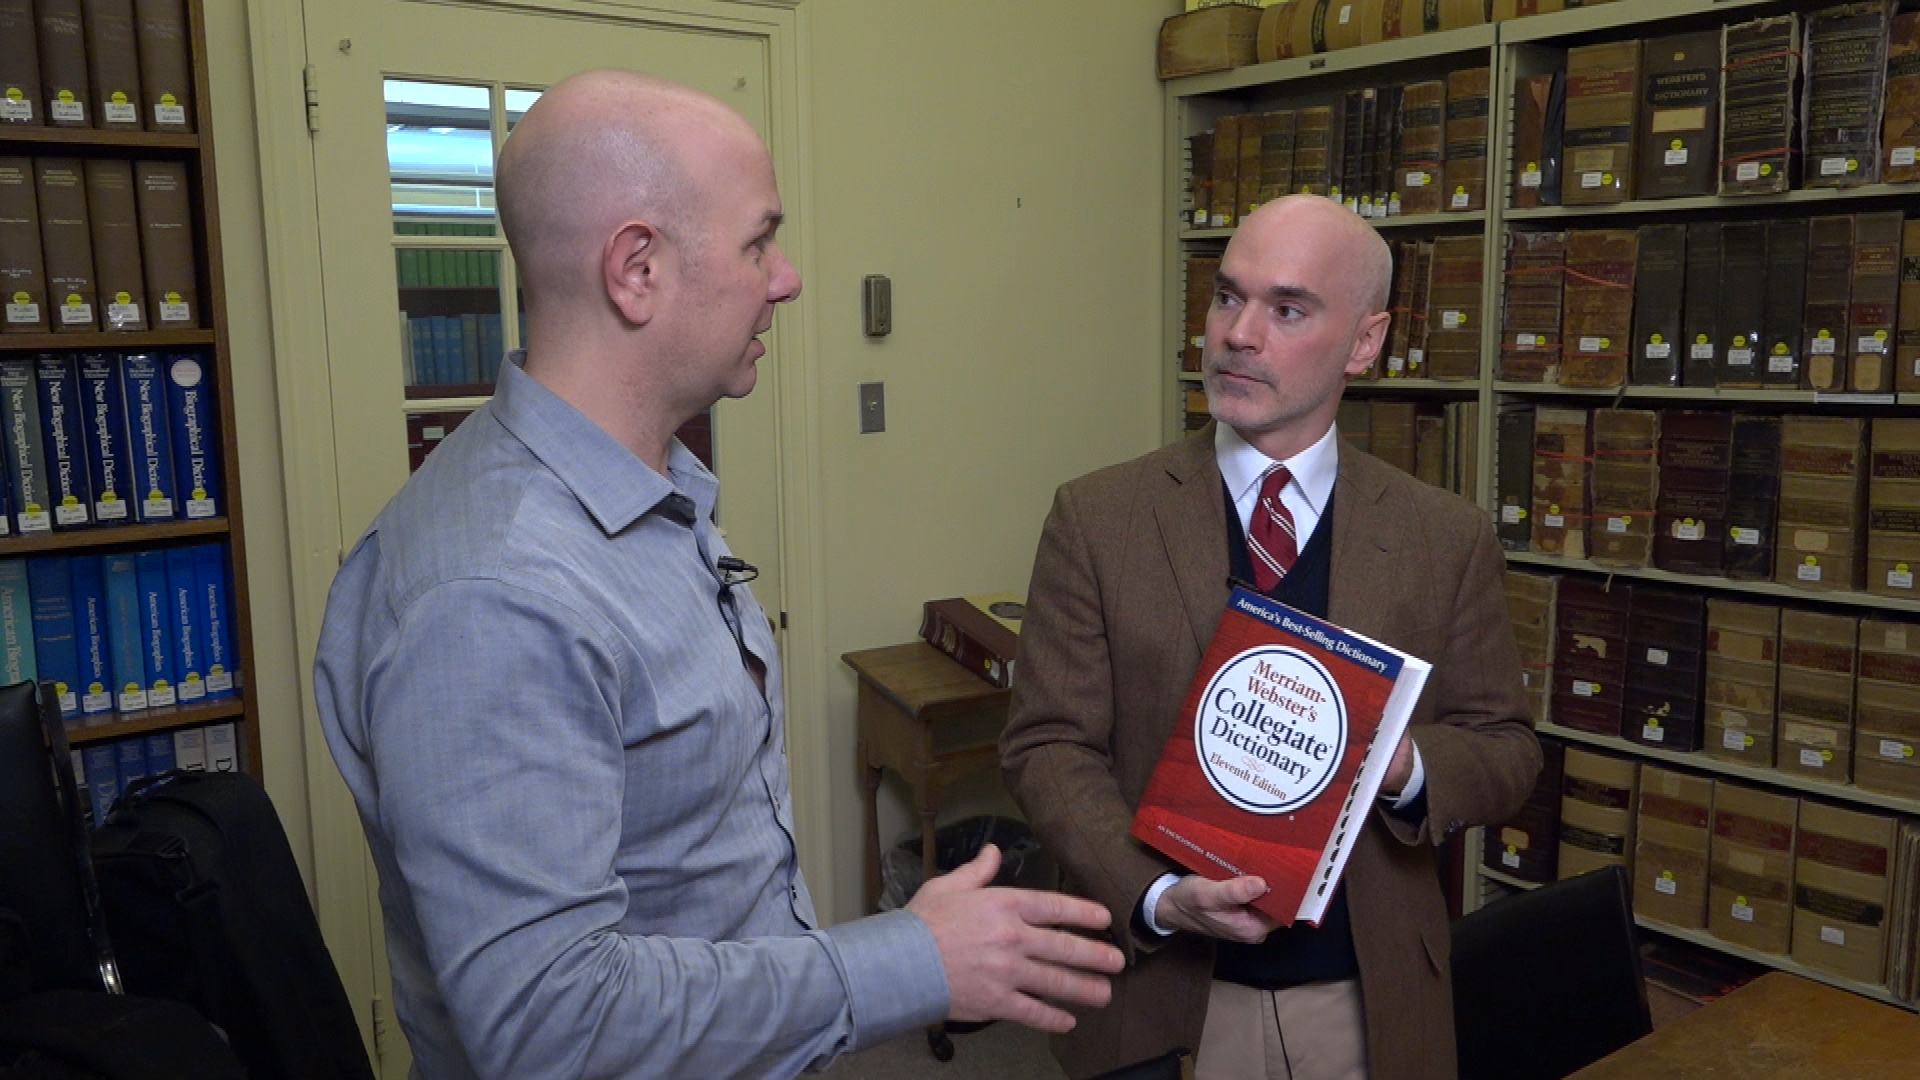 Monte Belmonte stops by Merriam-Webster Dictionary's Springfield, MA headquarters to see how politics affects our lexicon.